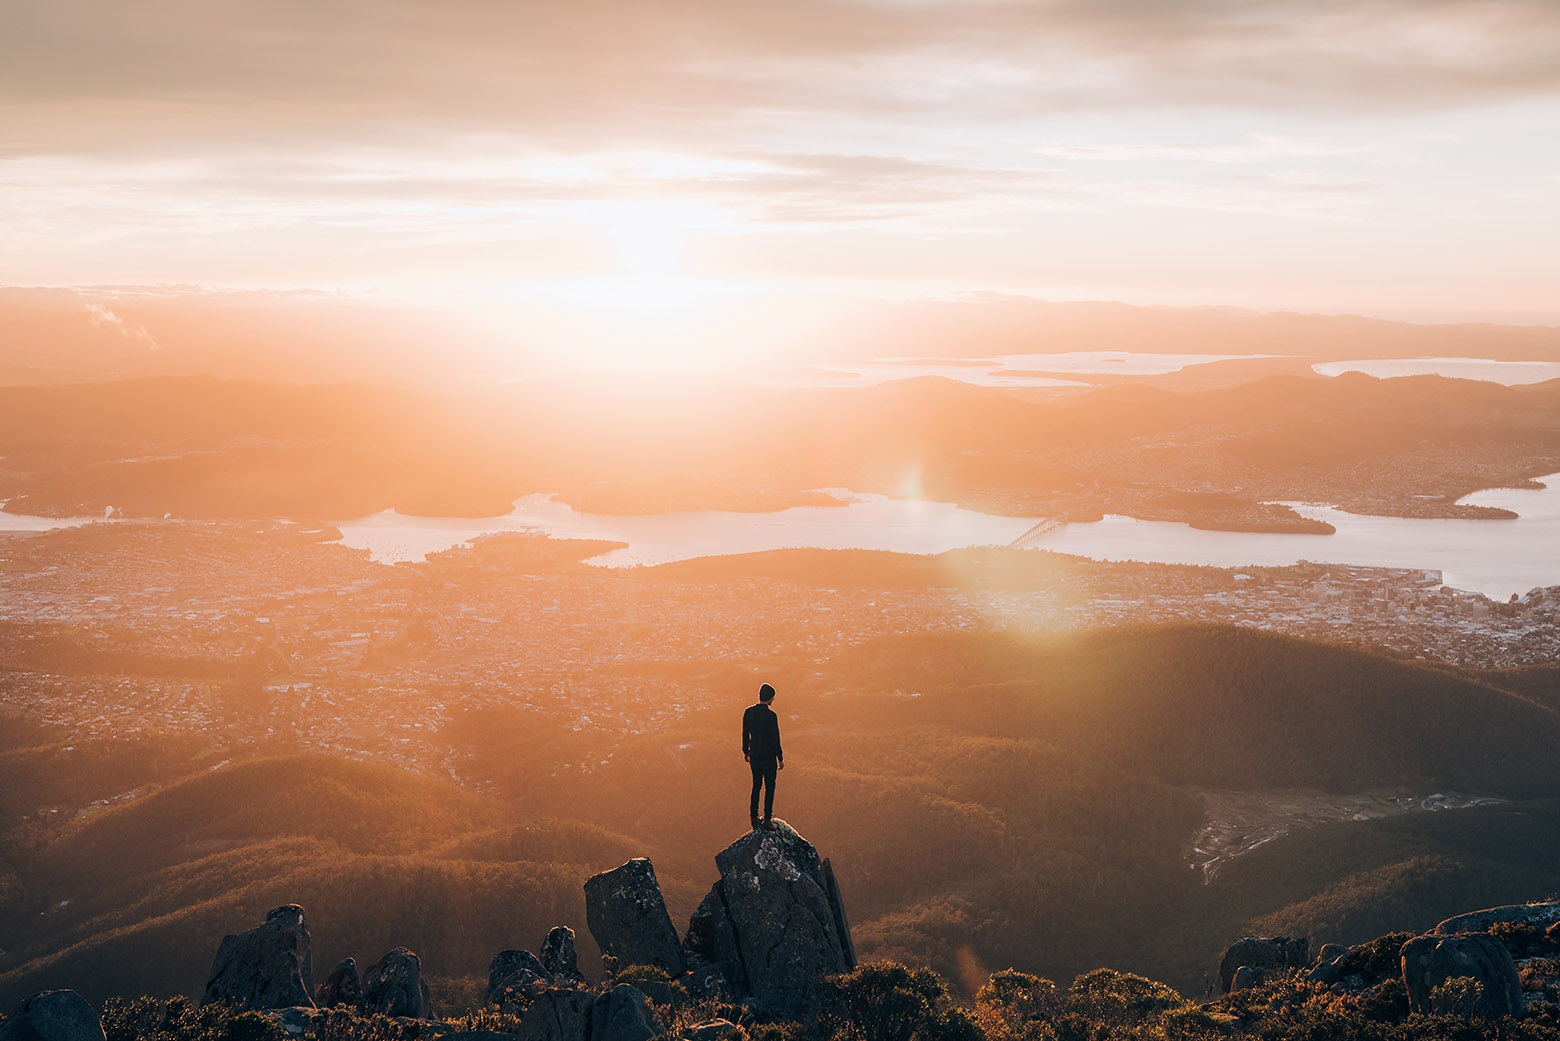 Take the short drive up kunanyi to see a spectacular sunrise from the summit on your Lap of Tasmania road trip